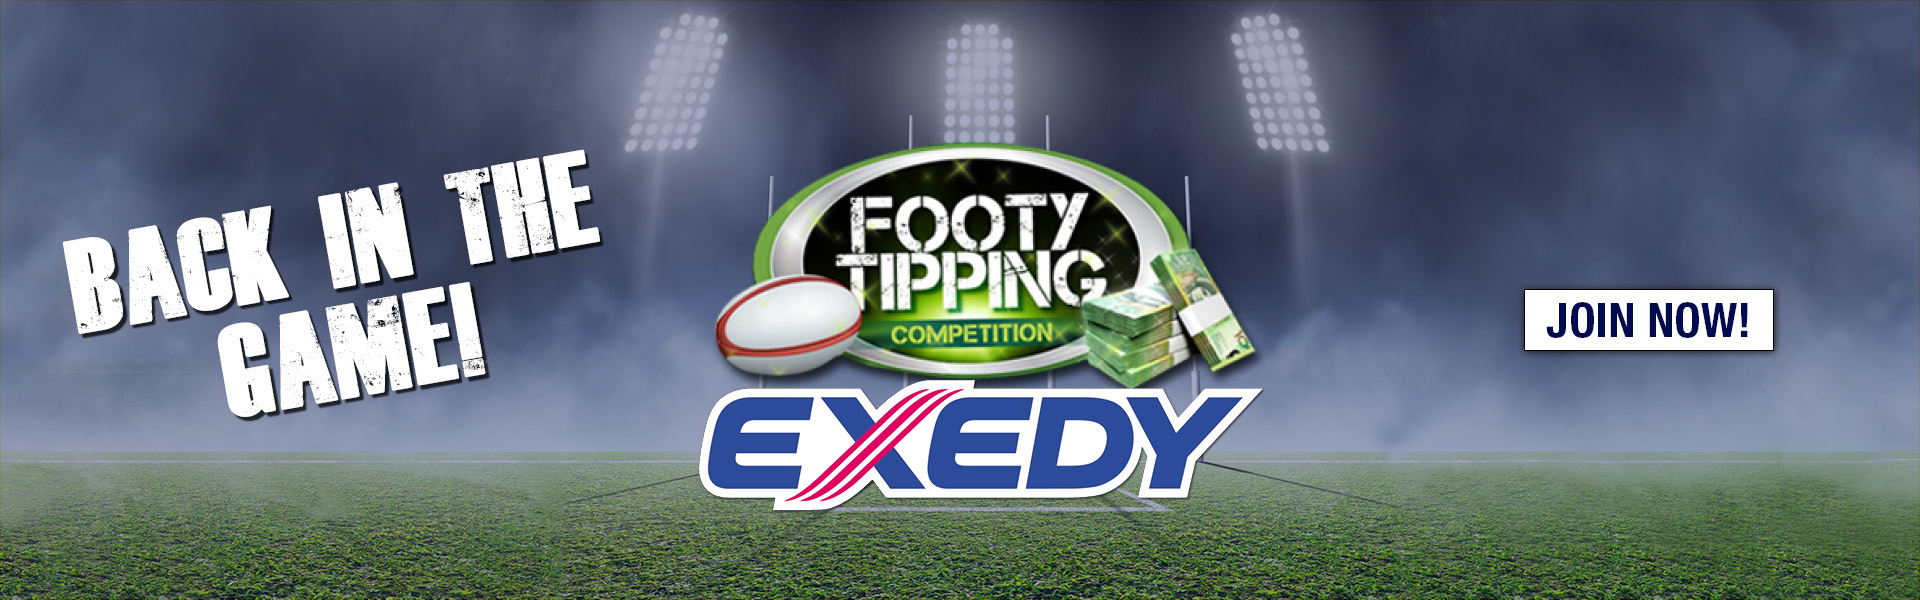 FOOTY TIPPING EXEDY